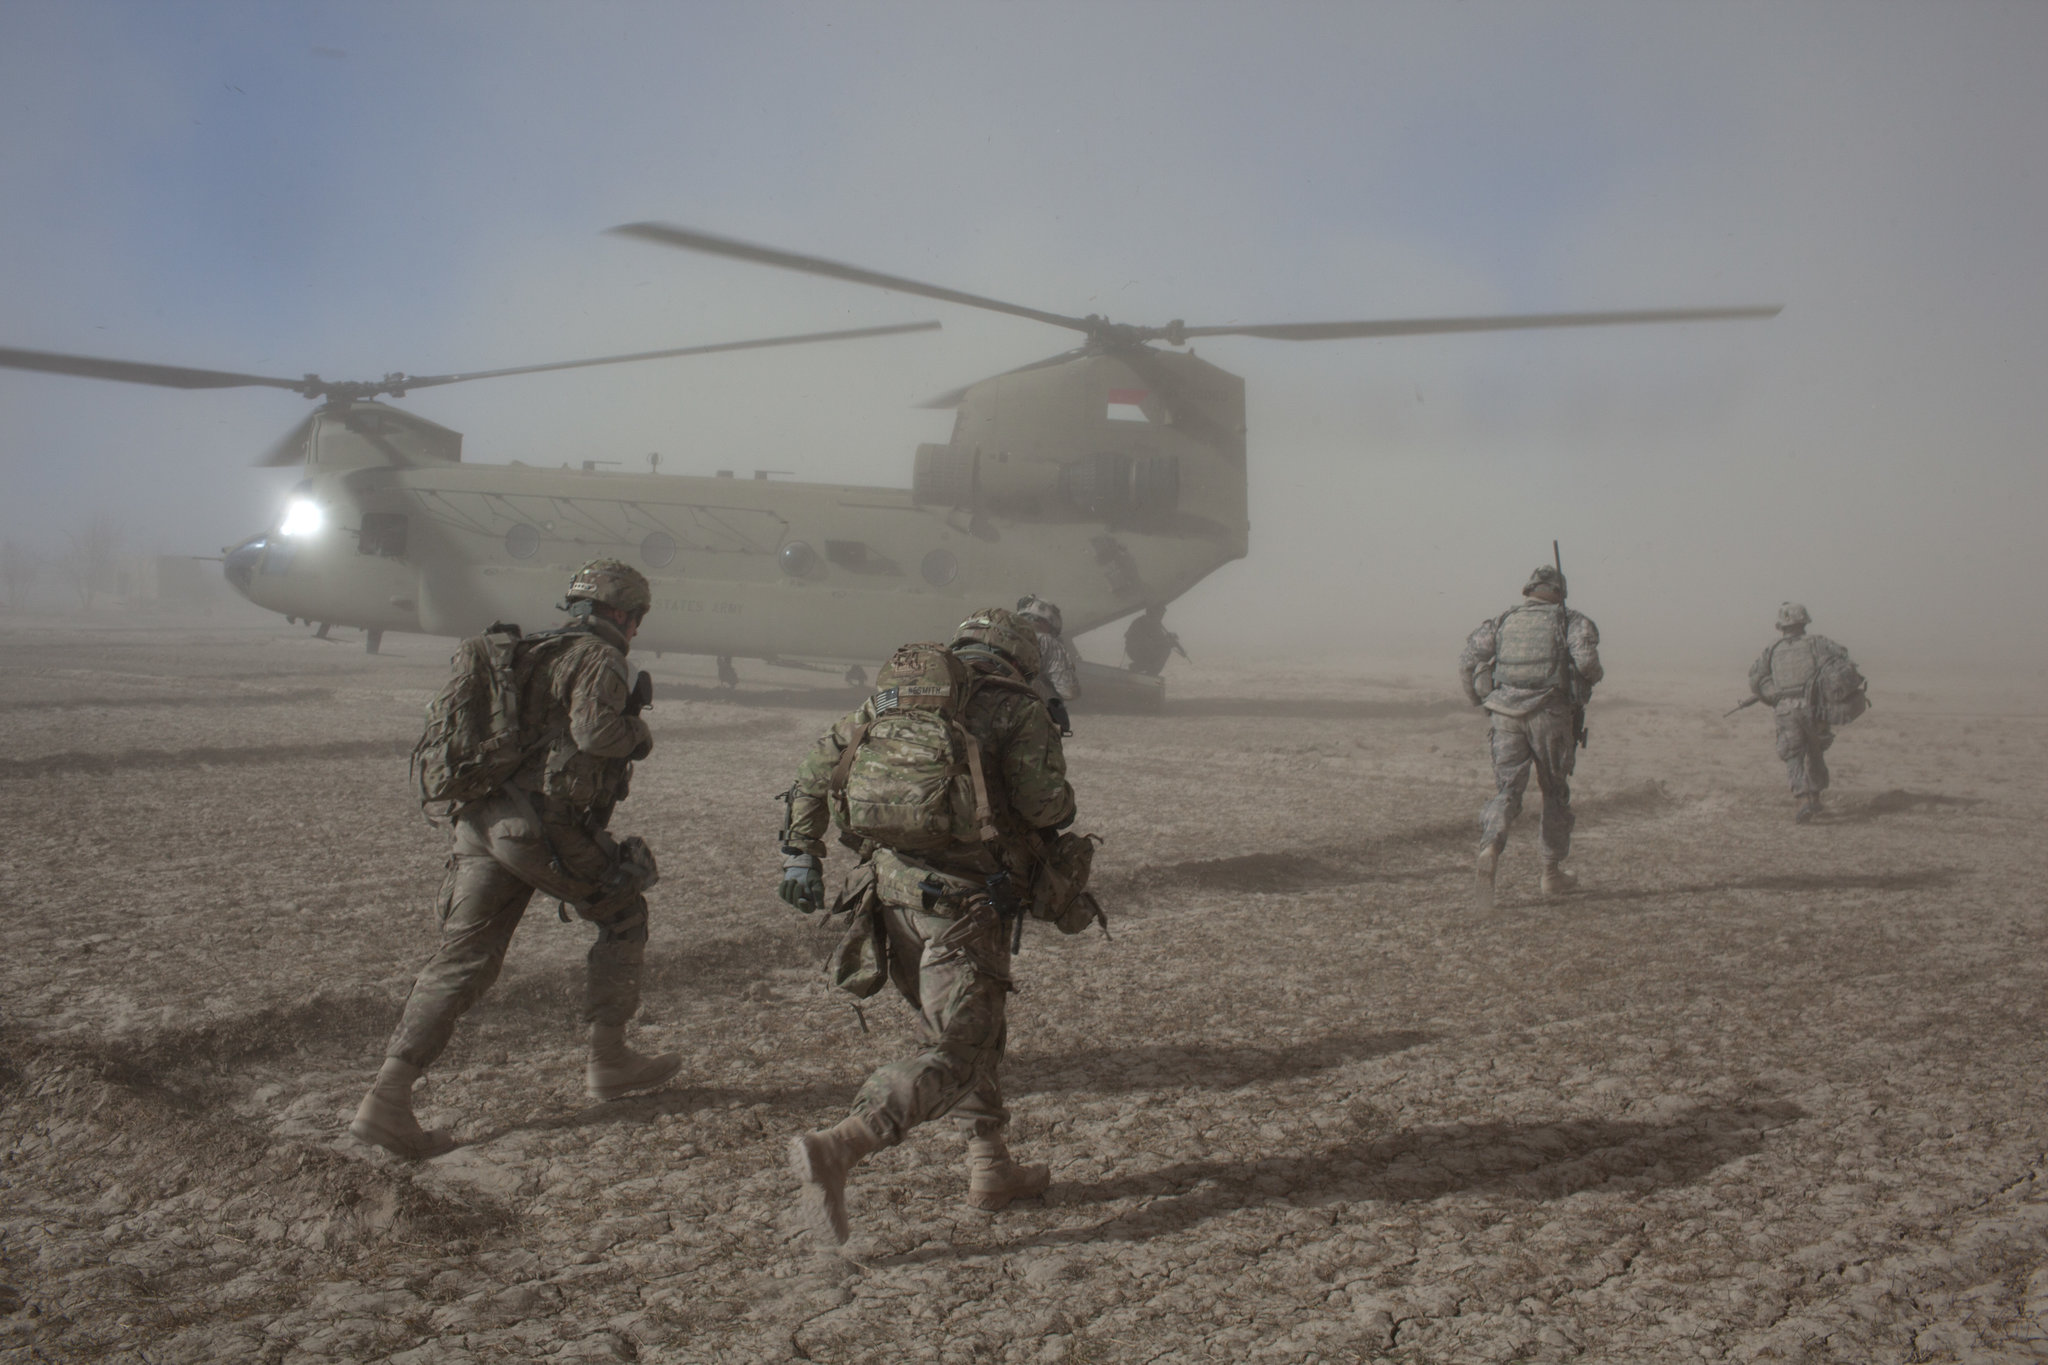 Why is the U.S. still at war?